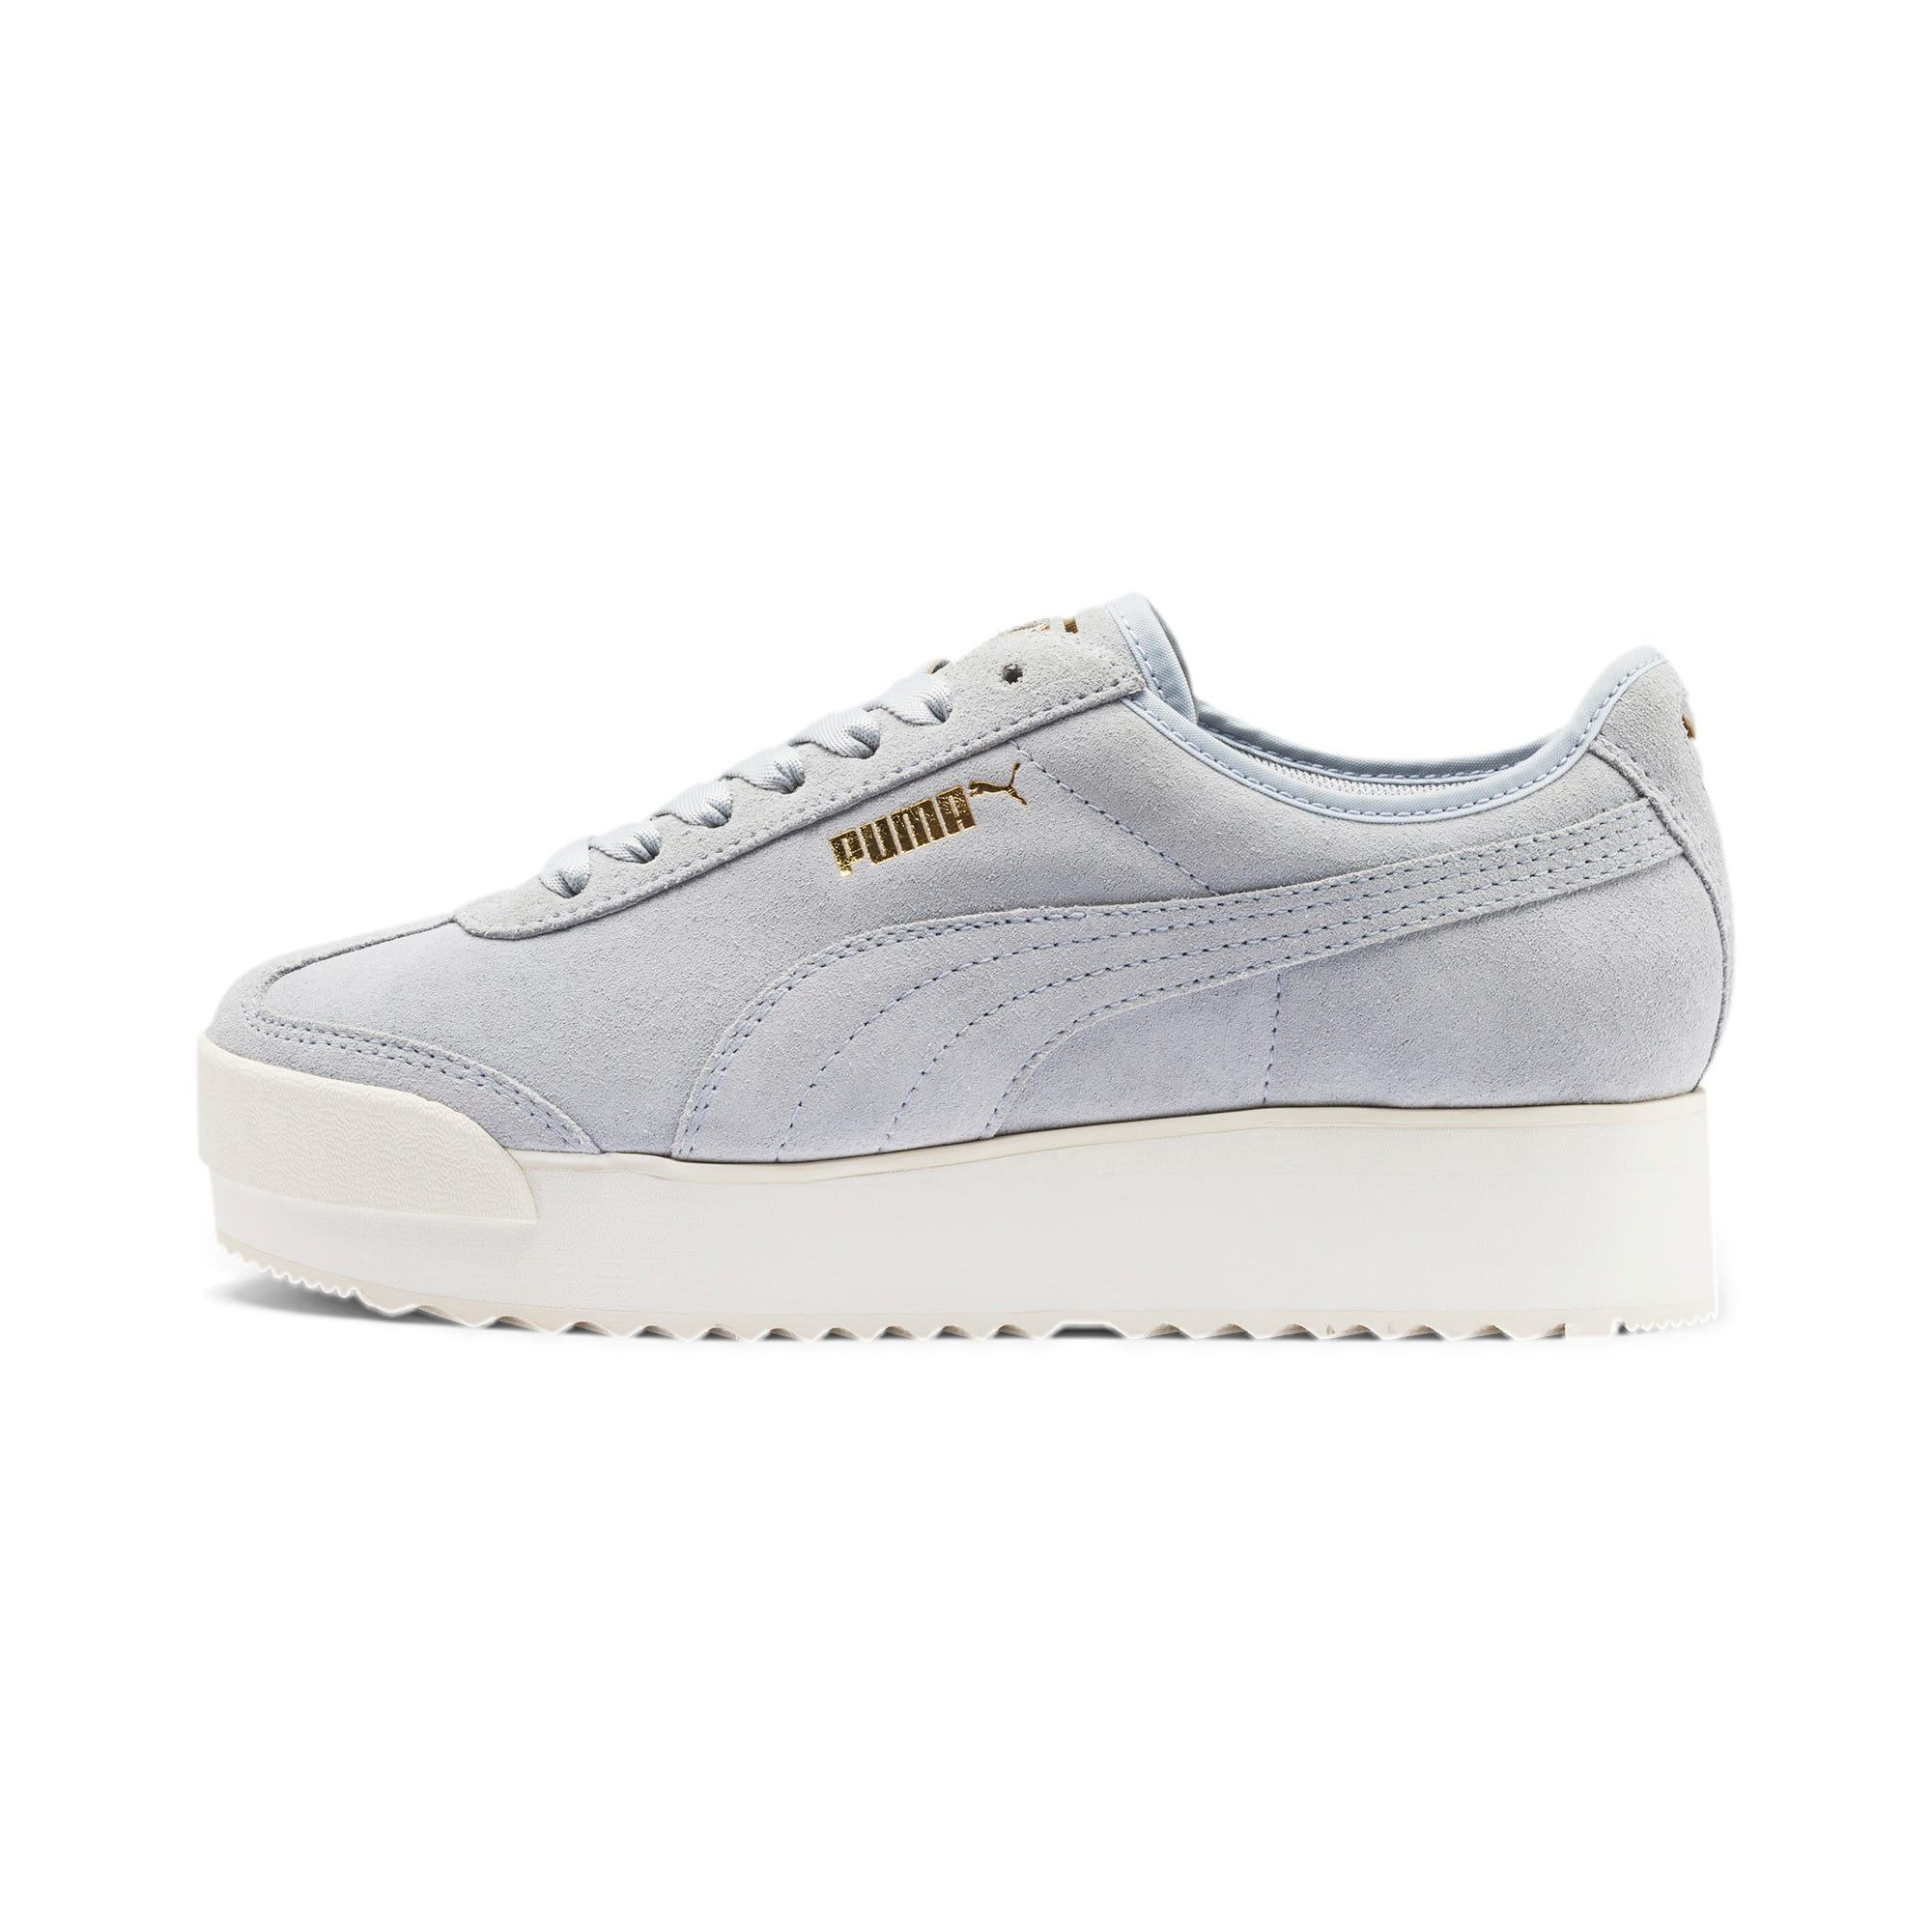 Thumbnail 1 of Roma Amor Suede Women's Sneakers, Heather-Puma Team Gold, medium